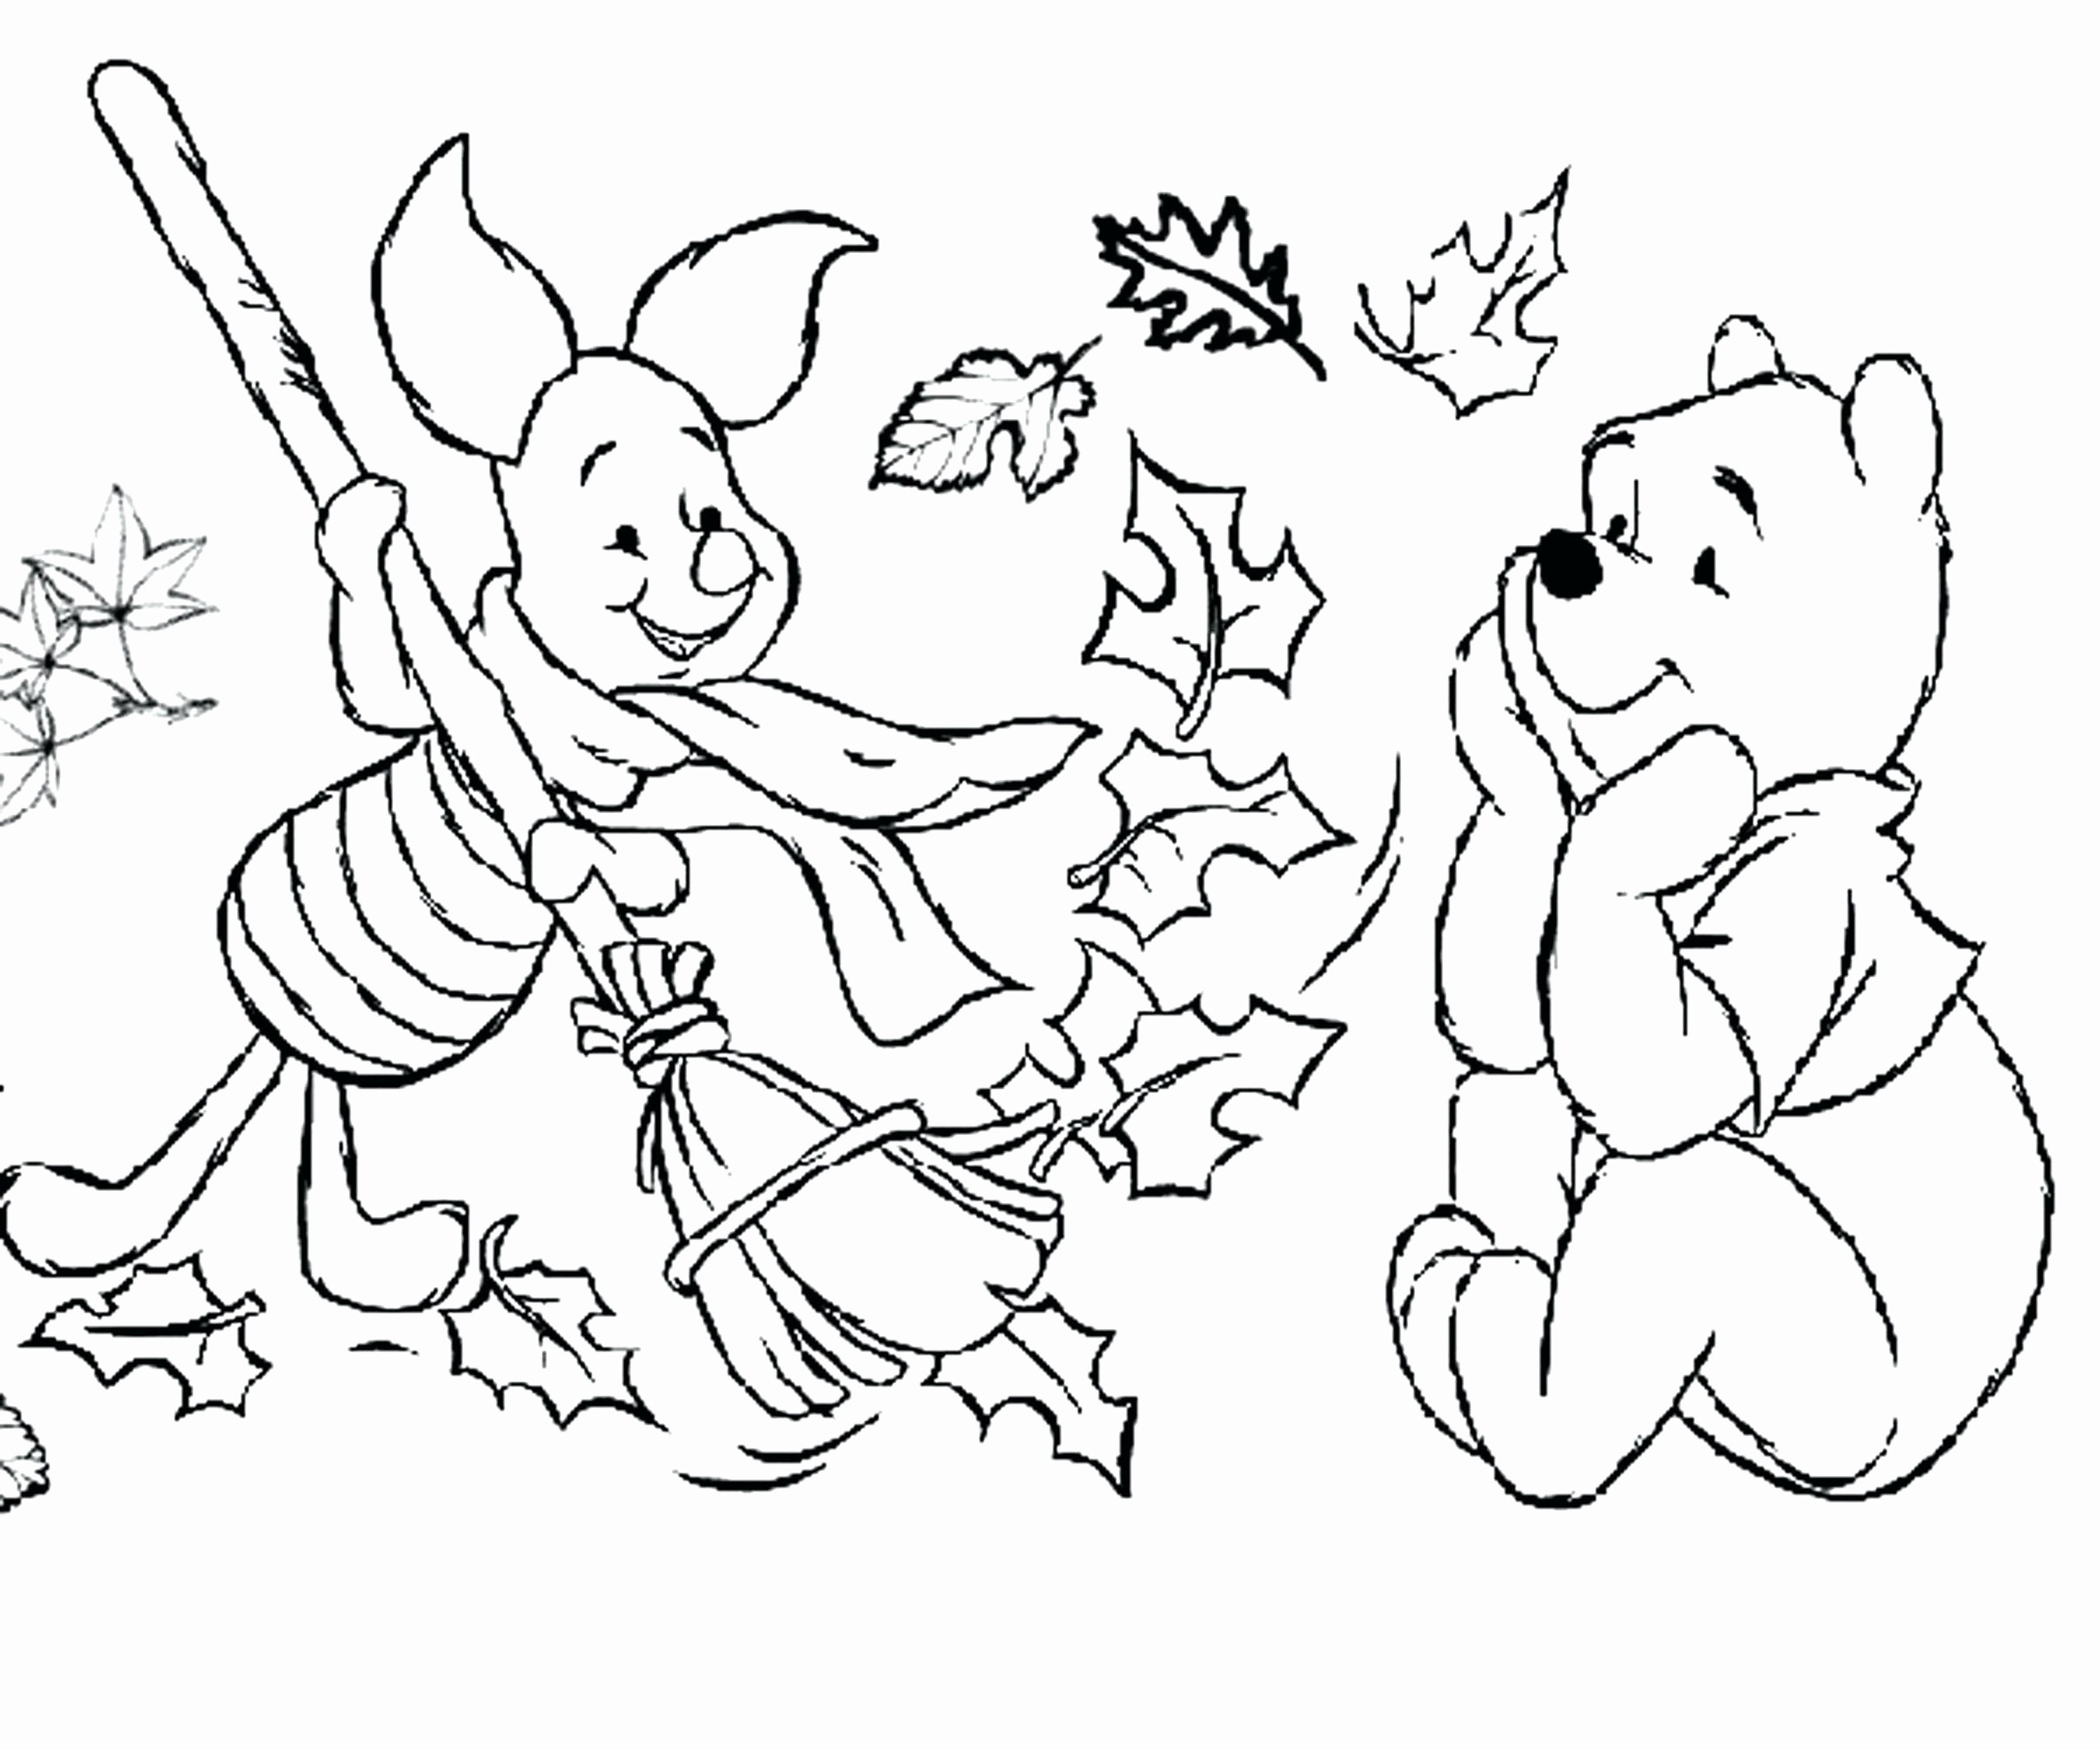 30 Kids Christian Coloring Pages Collection - Coloring Sheets